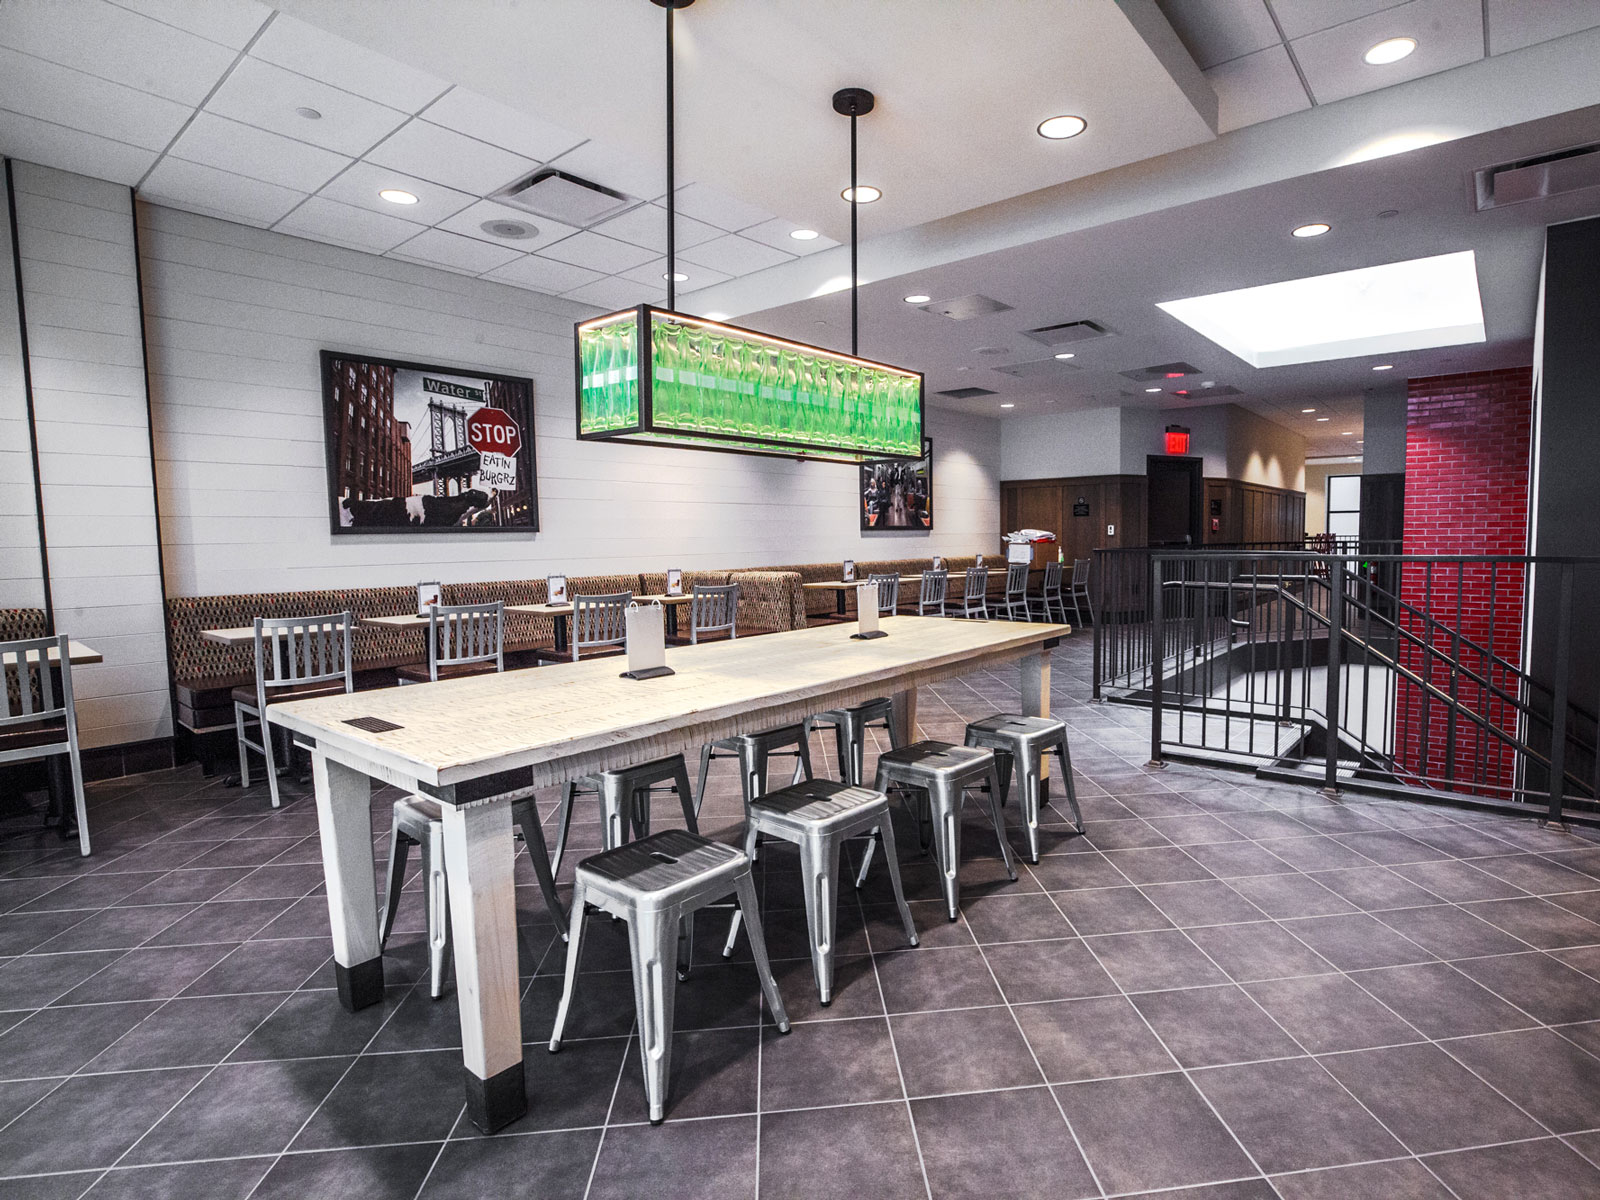 The World's Largest Chick-Fil-A Opened in New York City